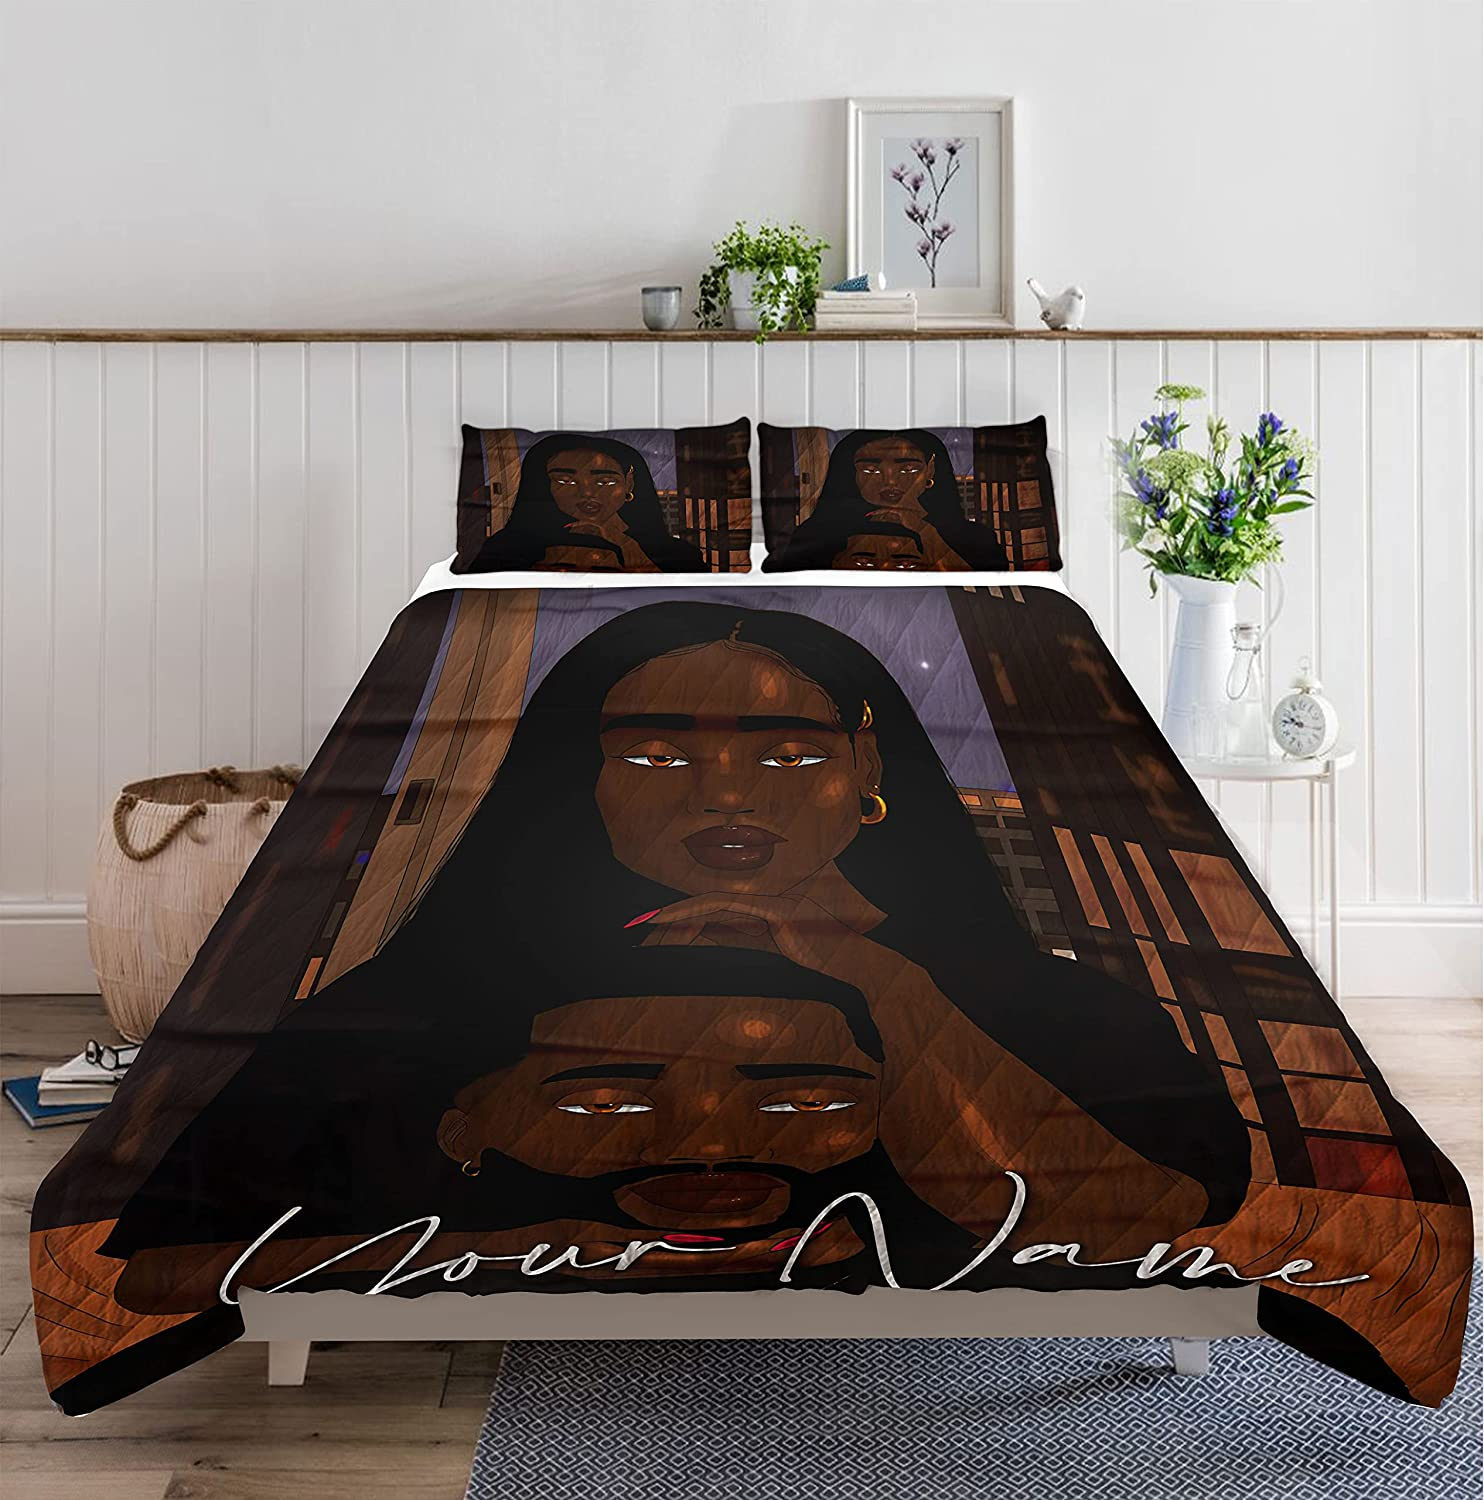 GANTEE Be My Girl Black Quilt Bed Luxury Name CouplePersonalized Custom Opening large release sale